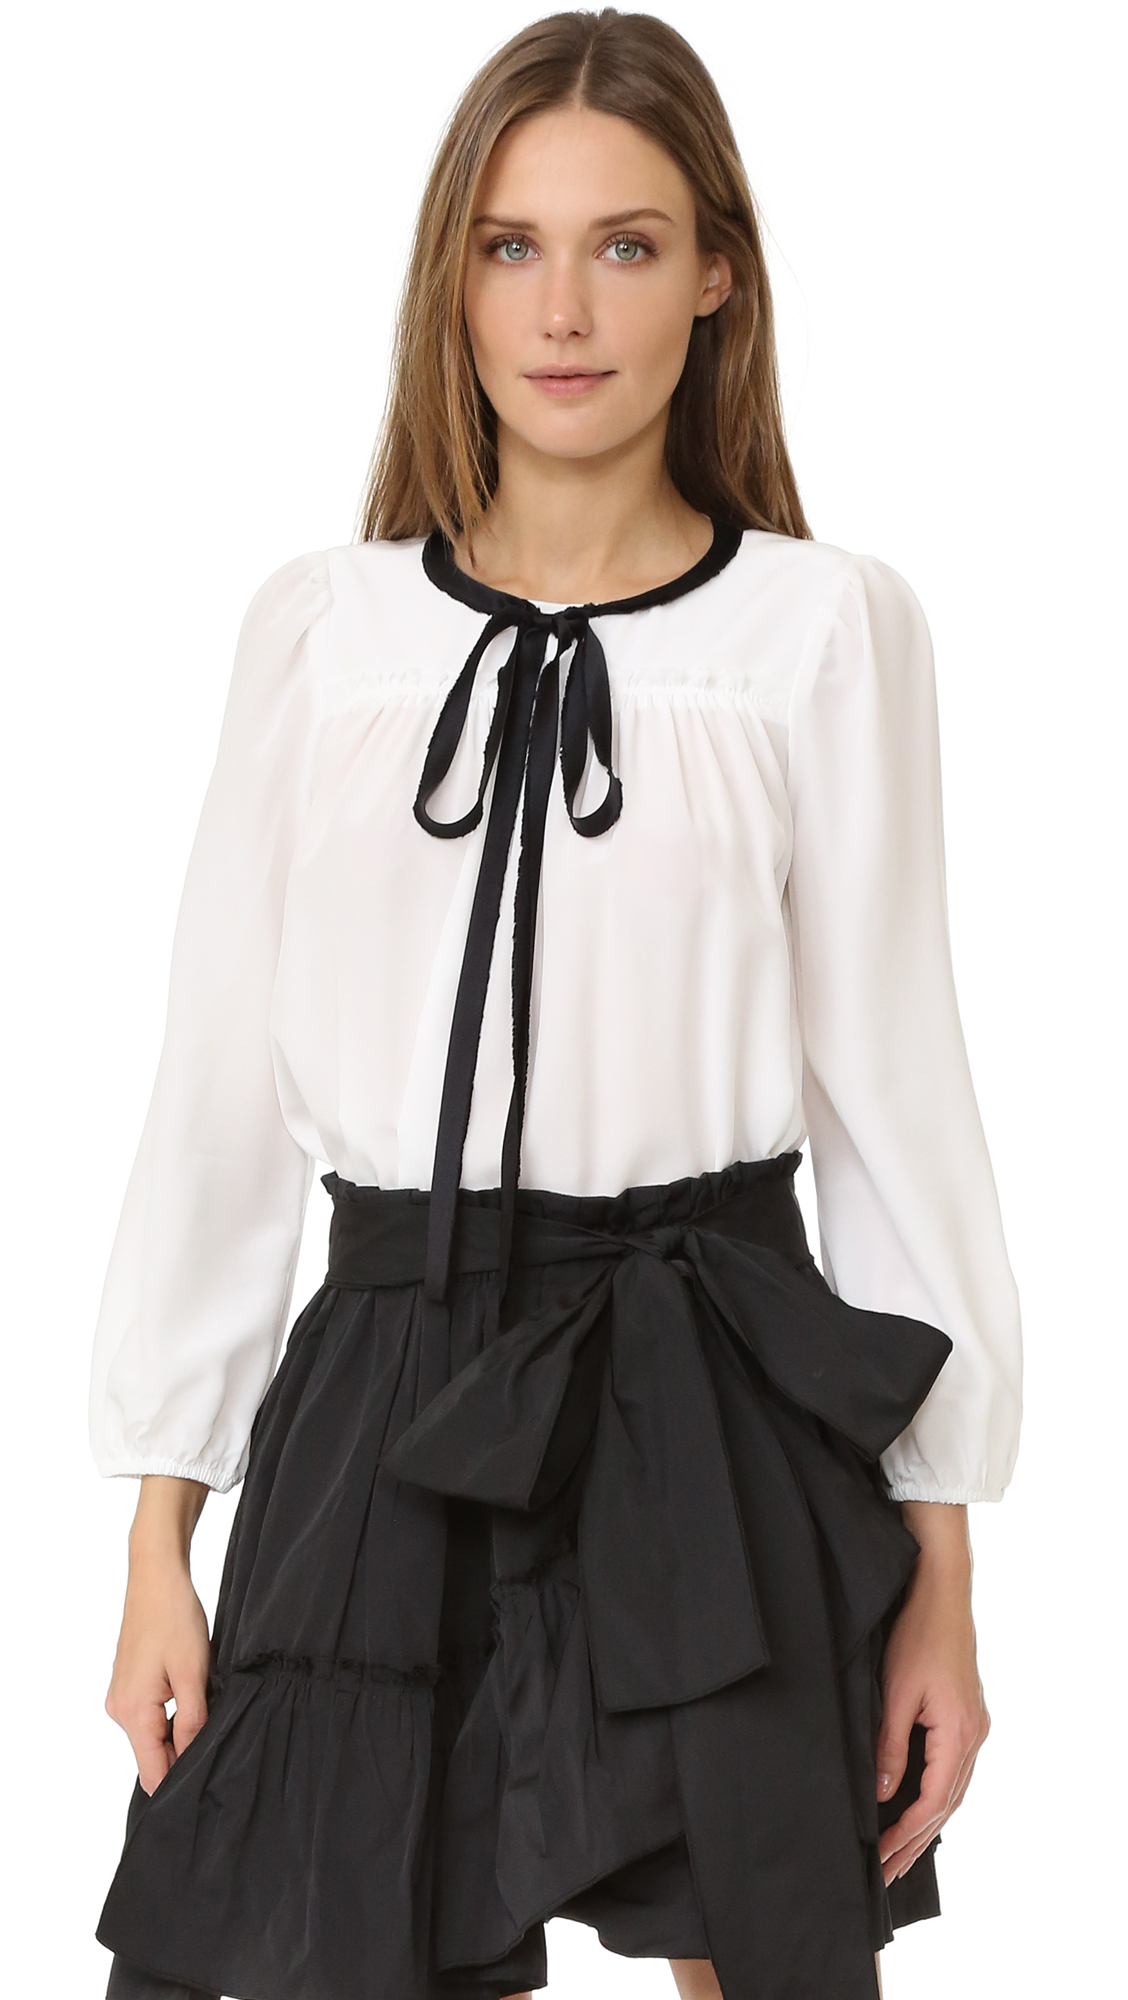 marc jacobs female marc jacobs silk blouse ivory